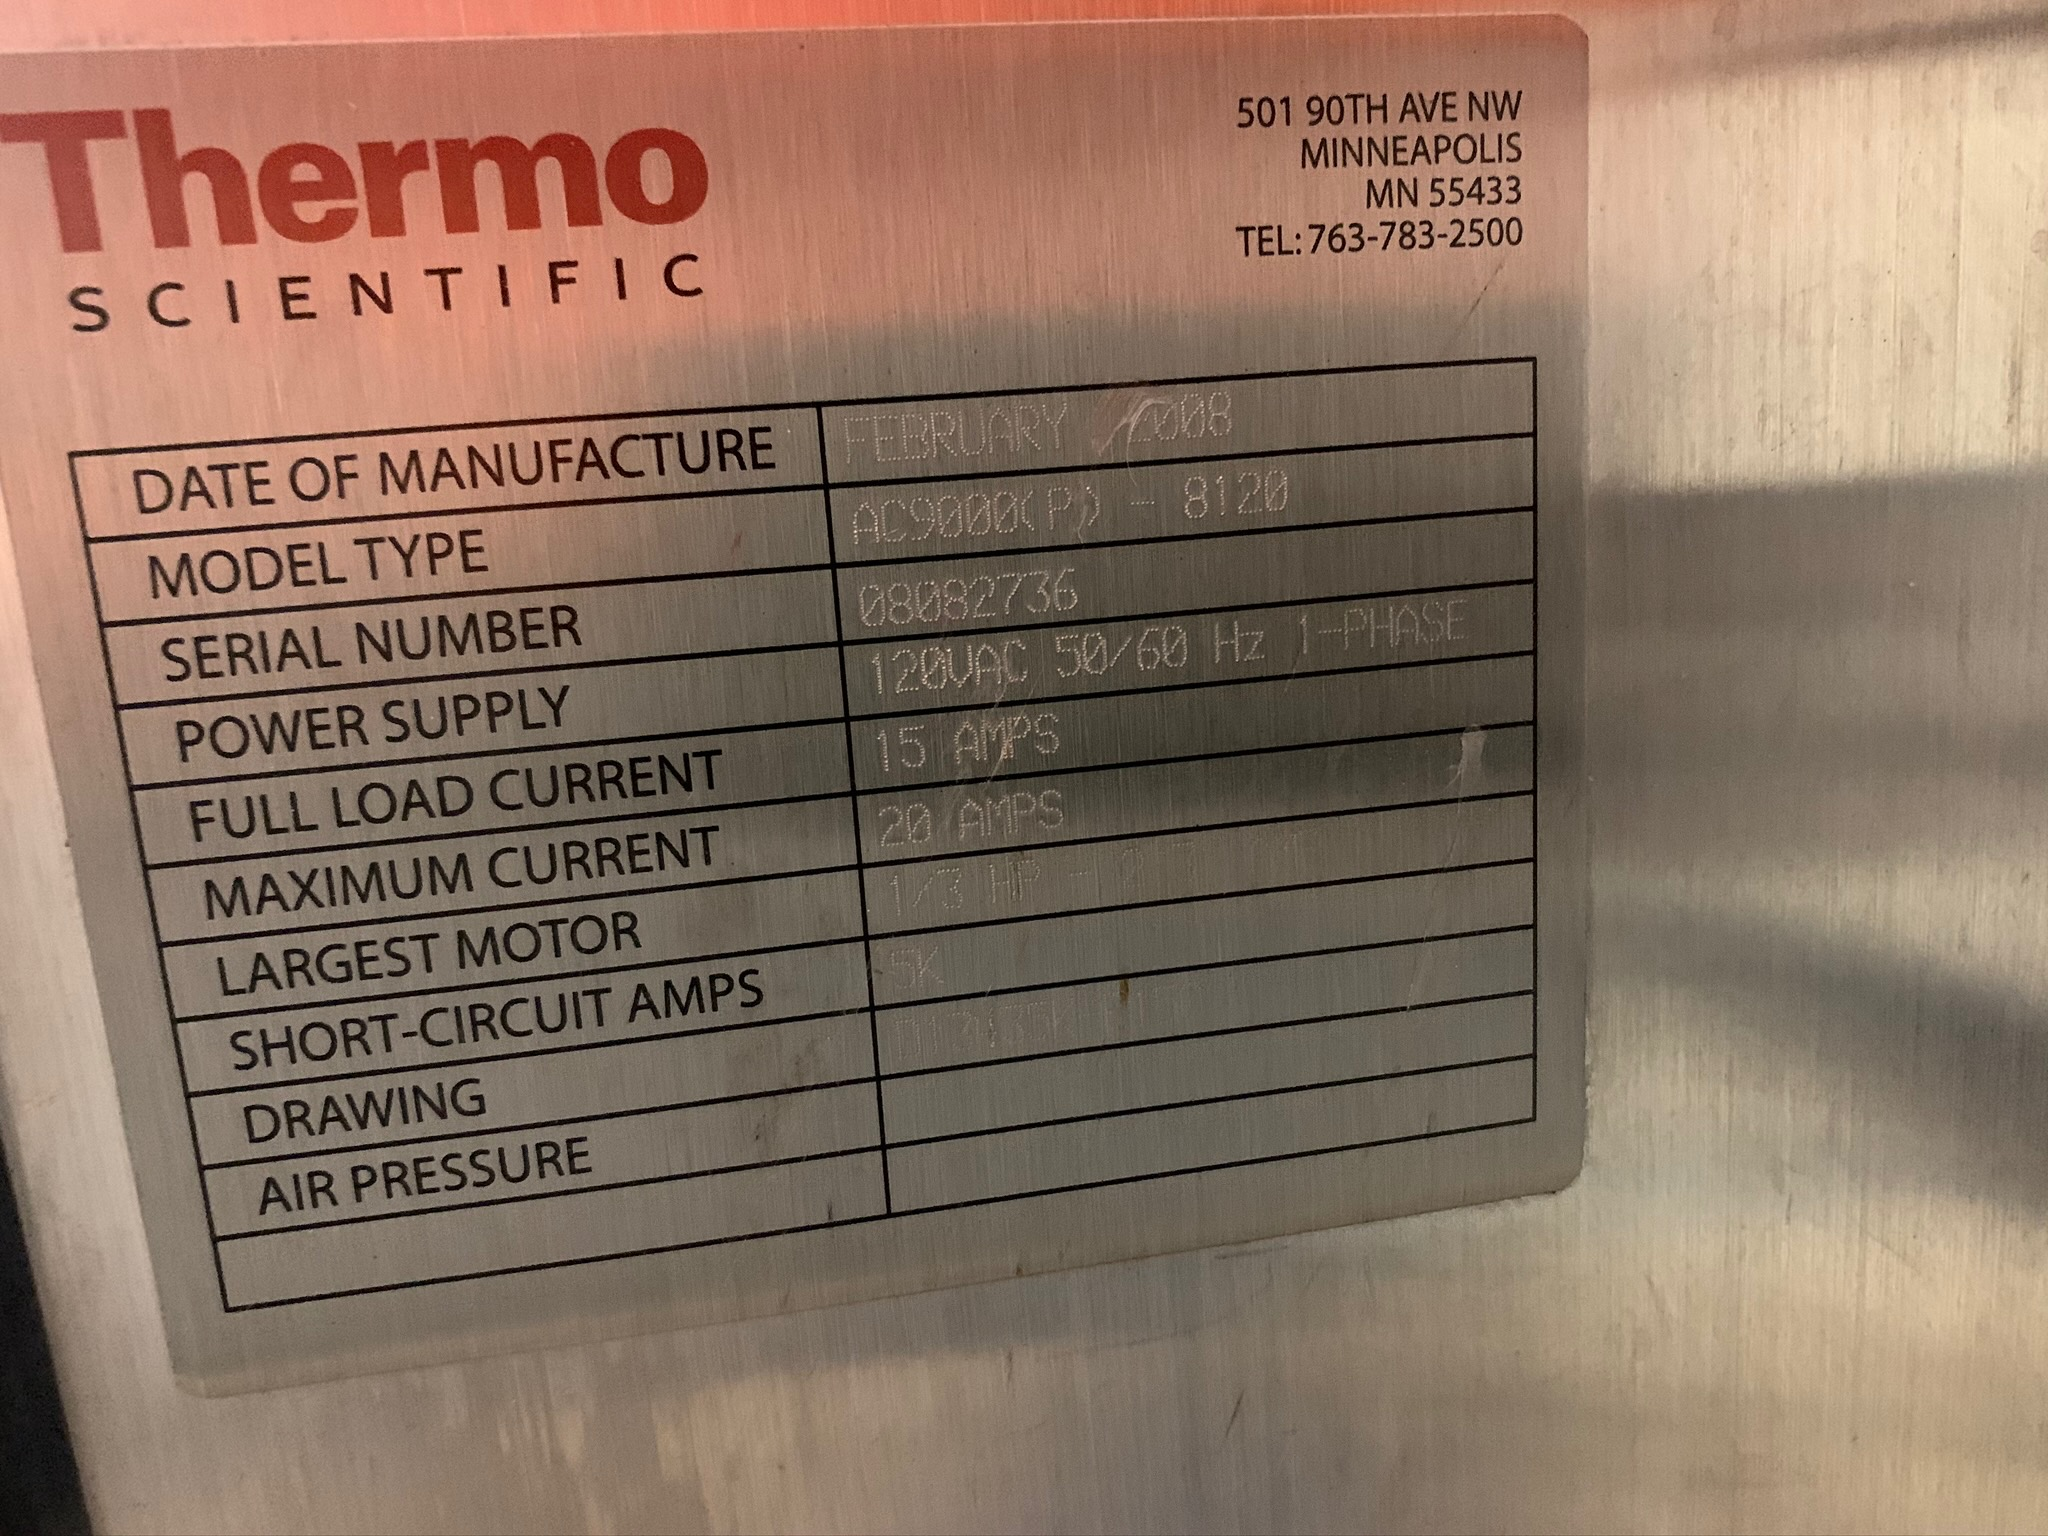 Thermo Scientific Check Weigher Model AC9000(p) -8120 S/N 08082736 (Rigging Fee - $50) - Image 4 of 4